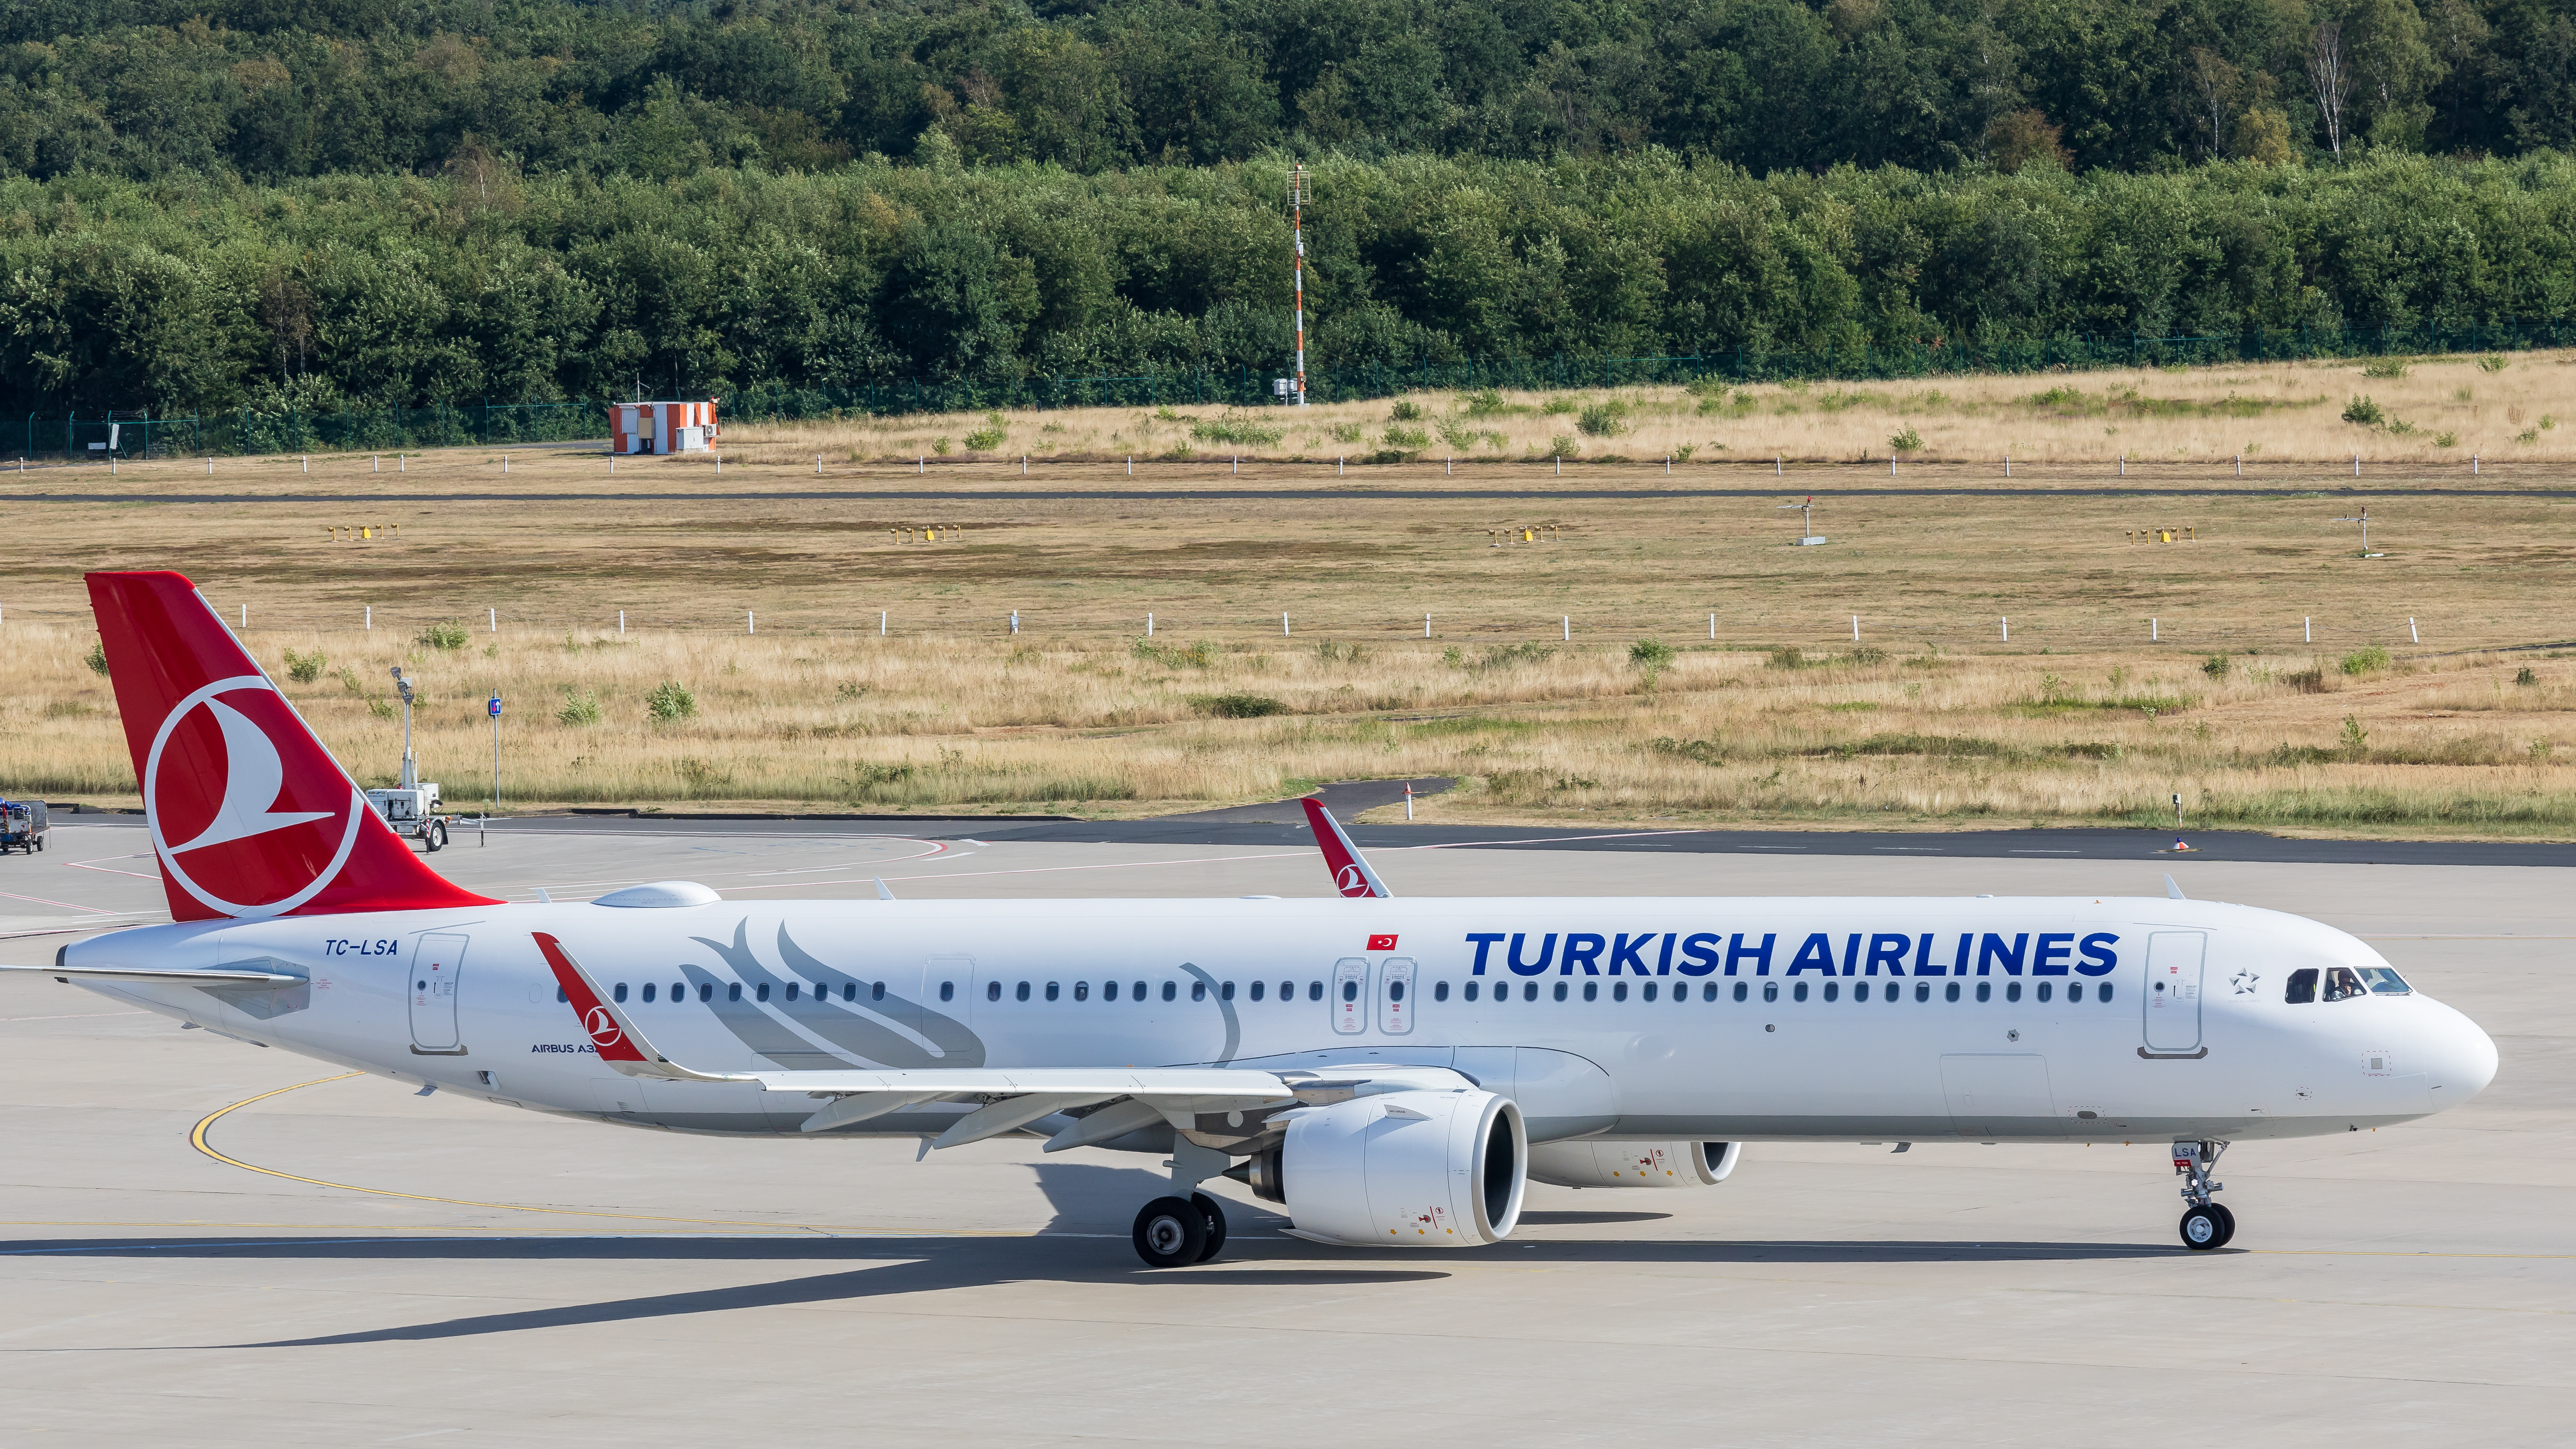 File:Turkish Airlines - Airbus A321-271NX - TC-LSA - Cologne